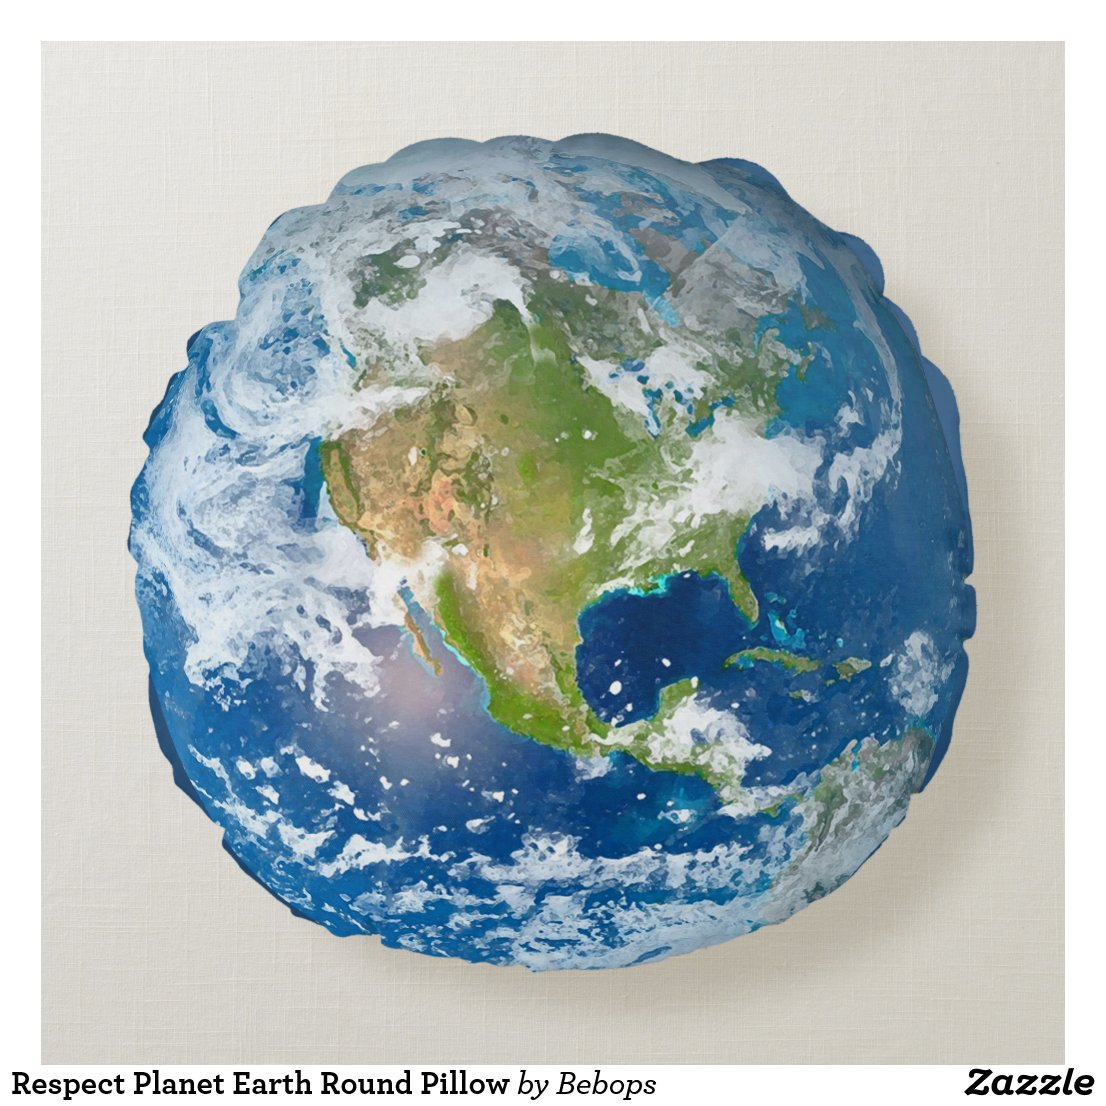 Respect Planet Earth Round Pillow